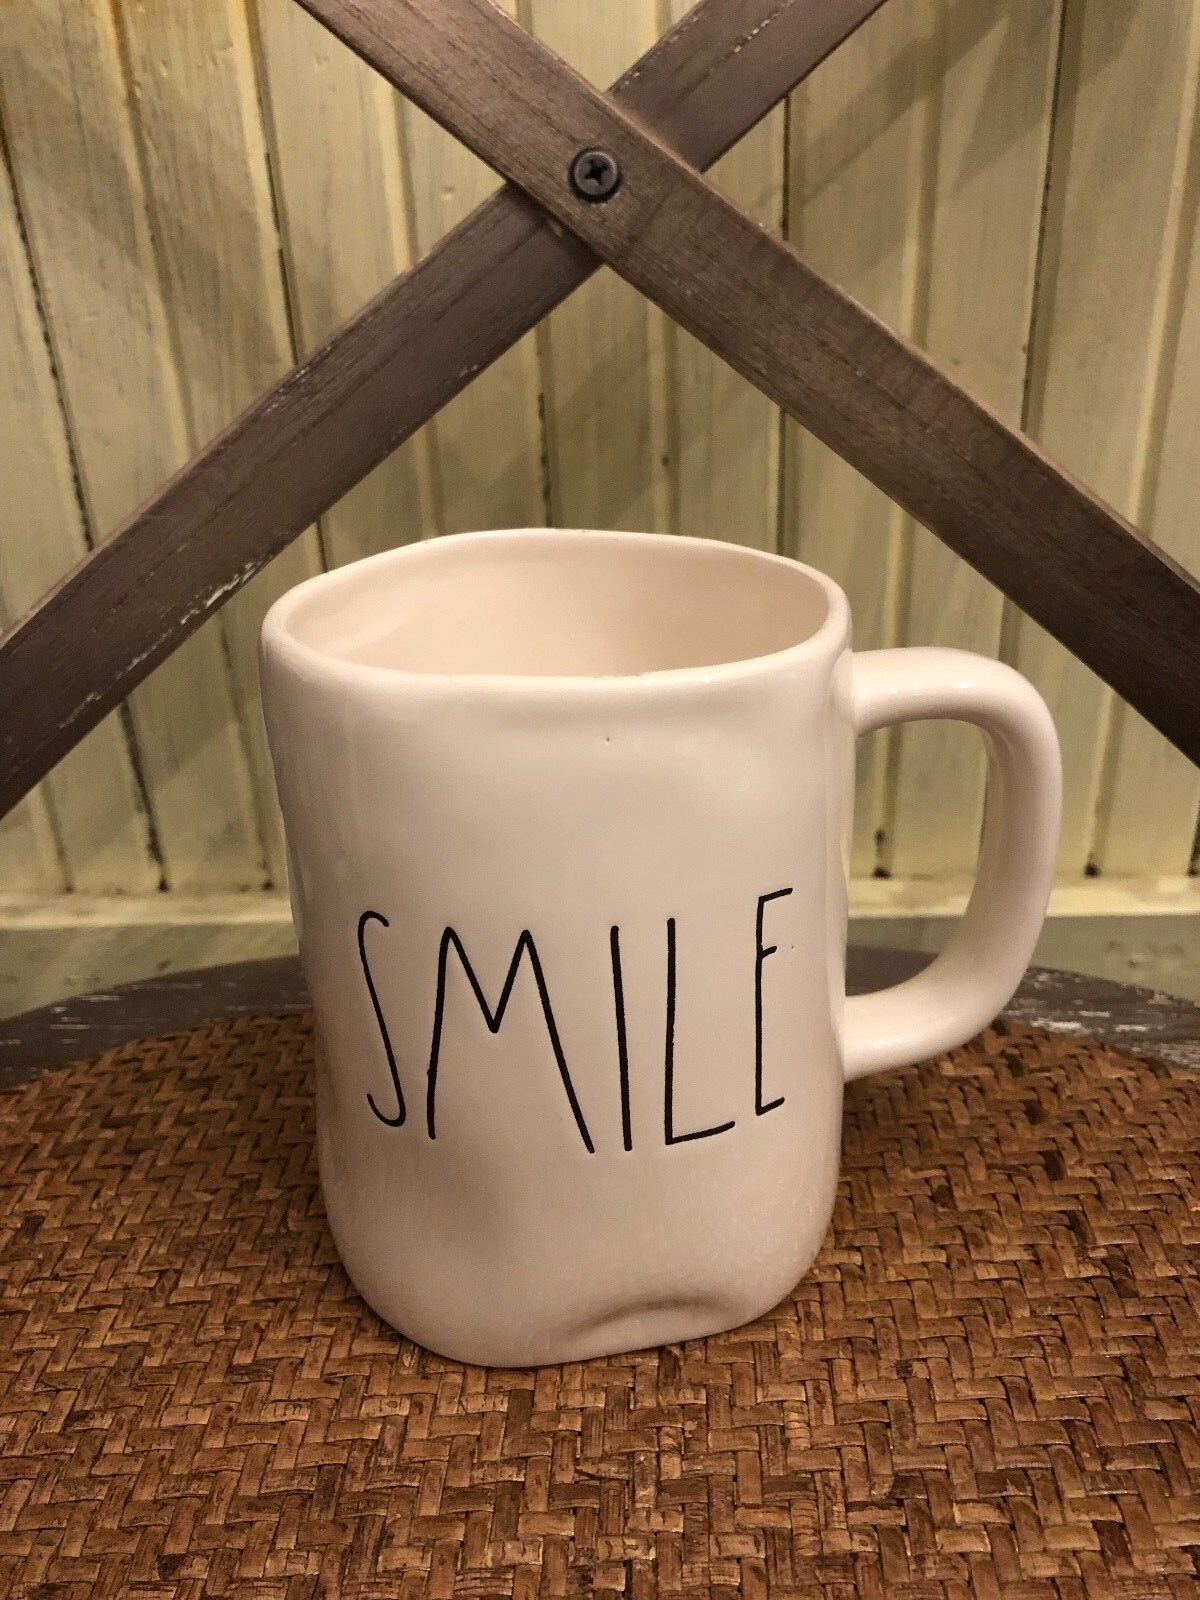 NEW ITEMS ADDED WEEKLY!!: NEW Rae Dunn Mugs and Bowls.